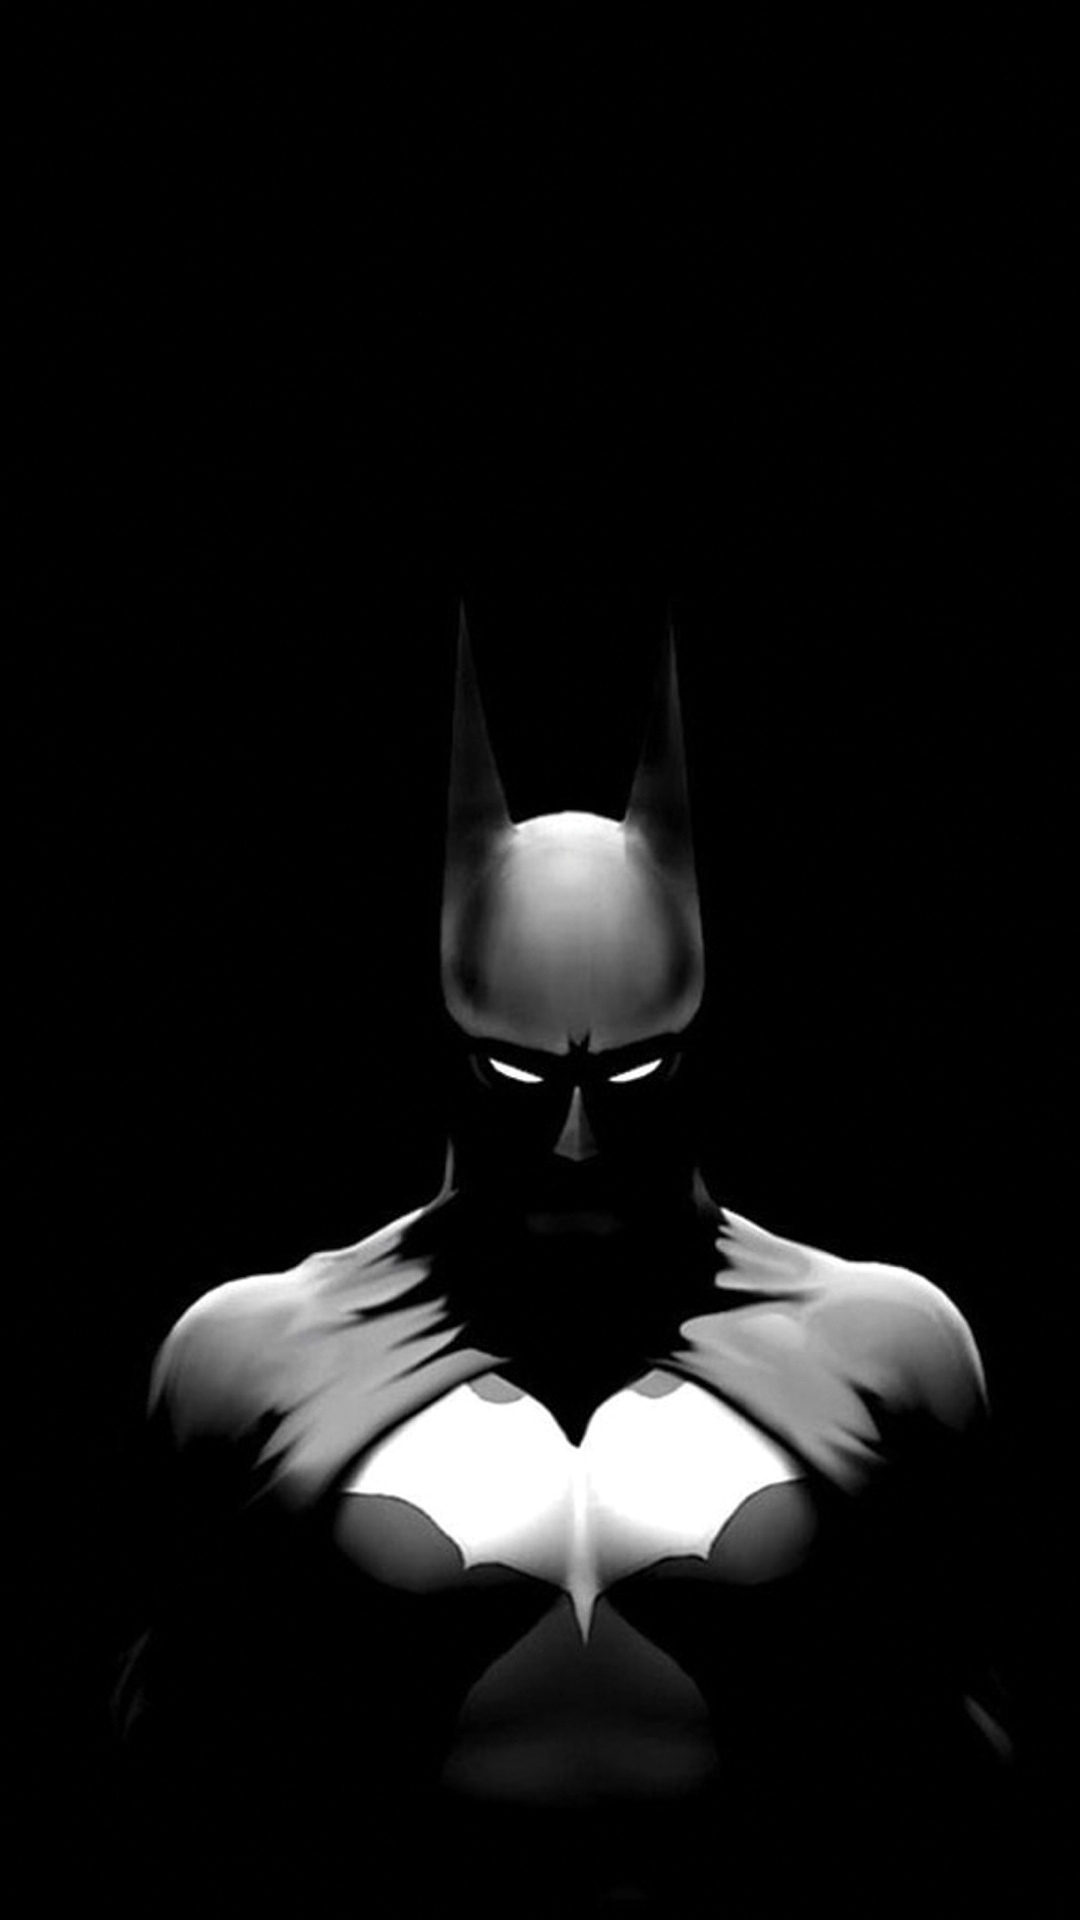 batman dark android wallpaper free download